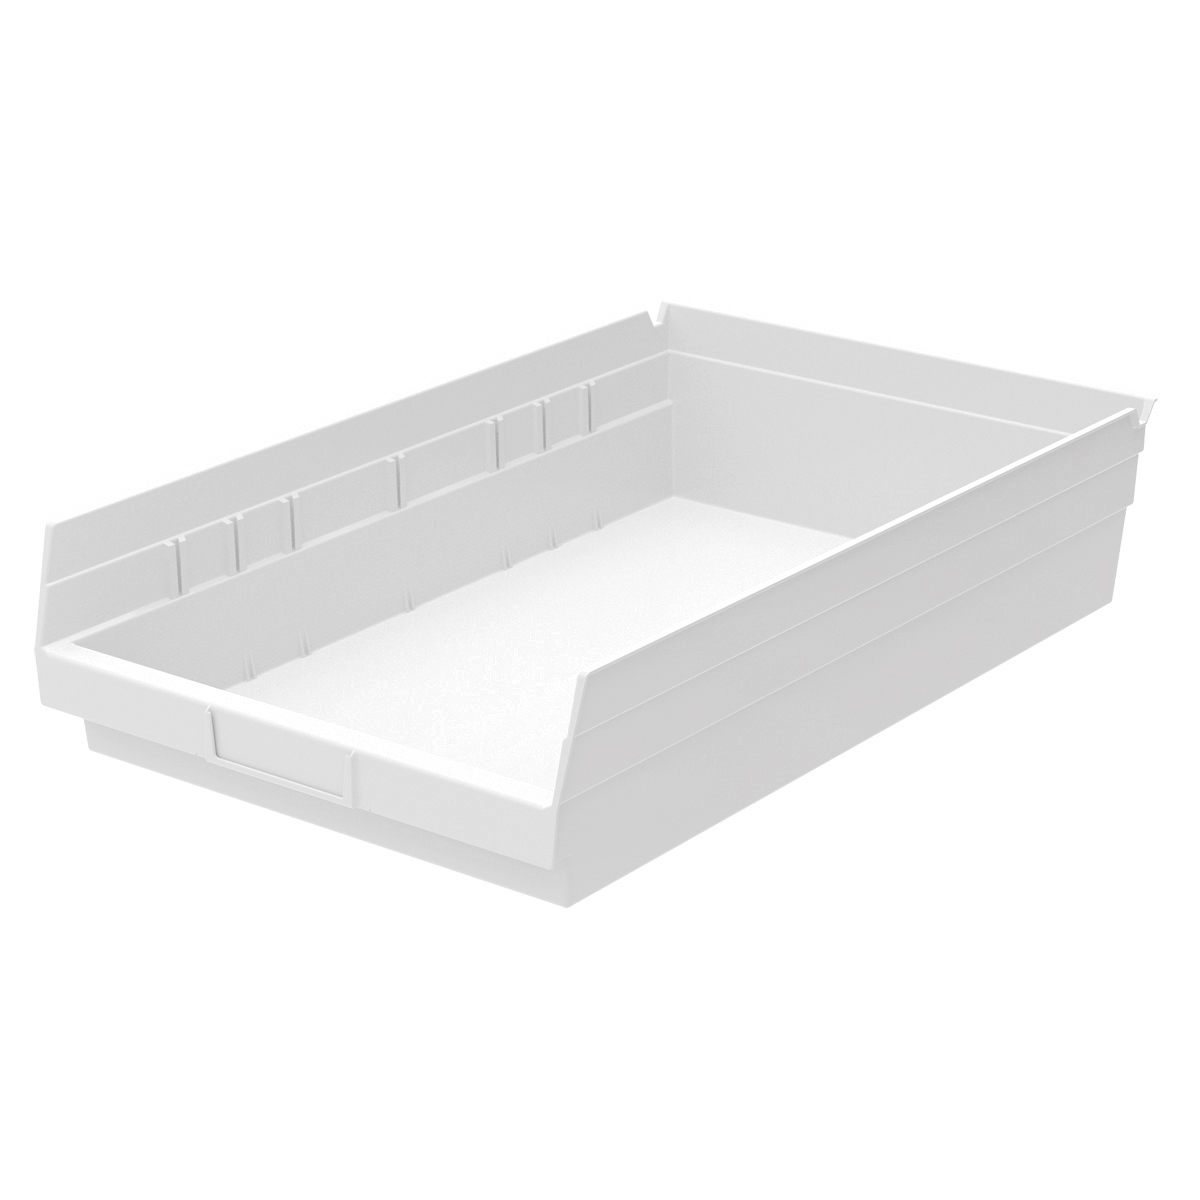 Shelf Bin 17-7/8 x 11-1/8 x 4, White (30178WHITE).  This item sold in carton quantities of 12.